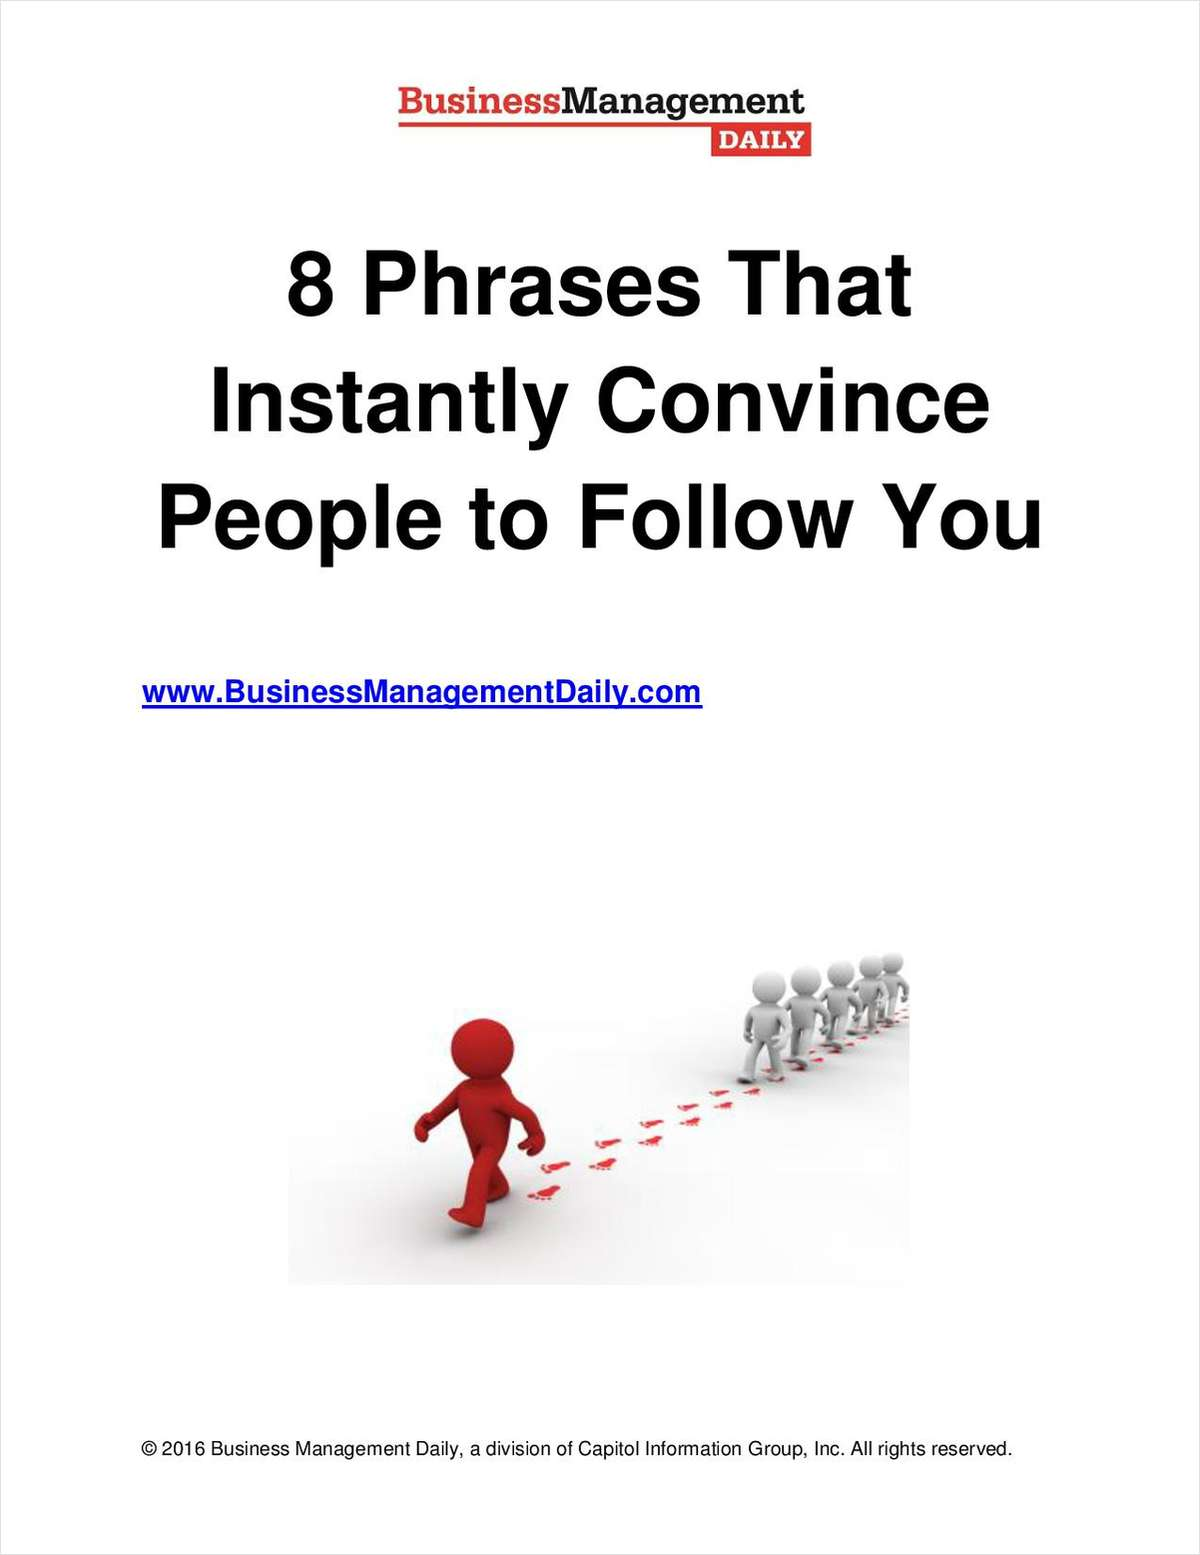 8 Phrases That Instantly Convince People to Follow You